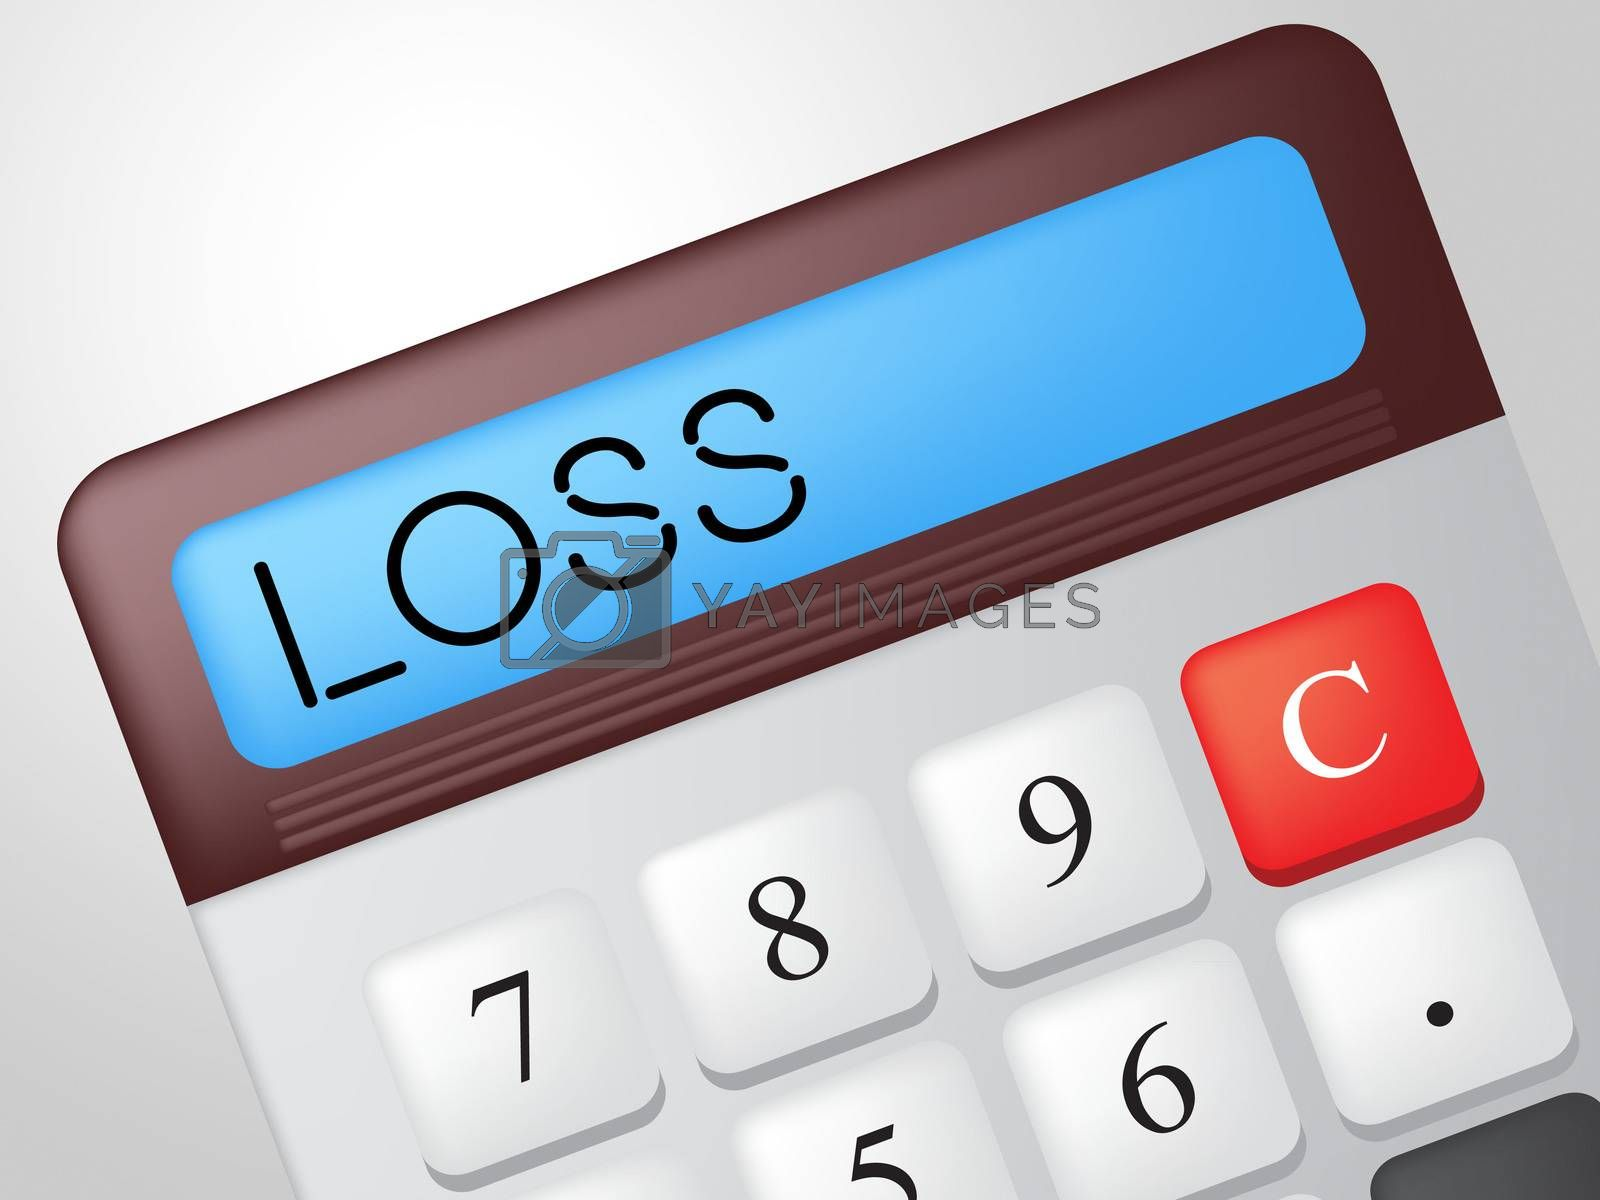 Loss Calculator Represents Commerce Losing And Finances by stuartmiles